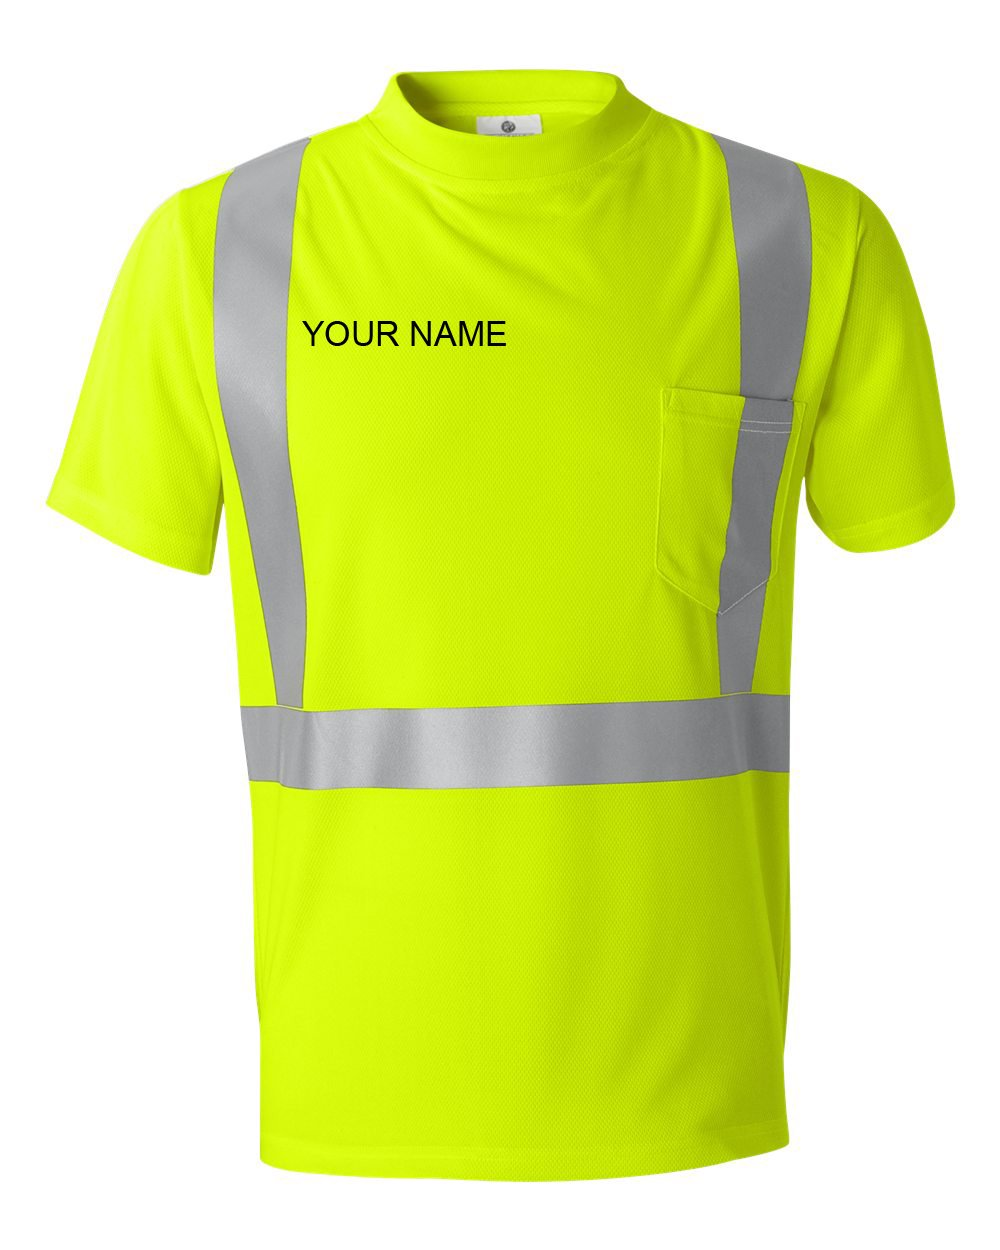 Men's Custom Name Embroidered High-Visibility Reflective Safety ANSI Construction Performance Microfiber Short Sleeve T-Shirt (Medium, Lime)